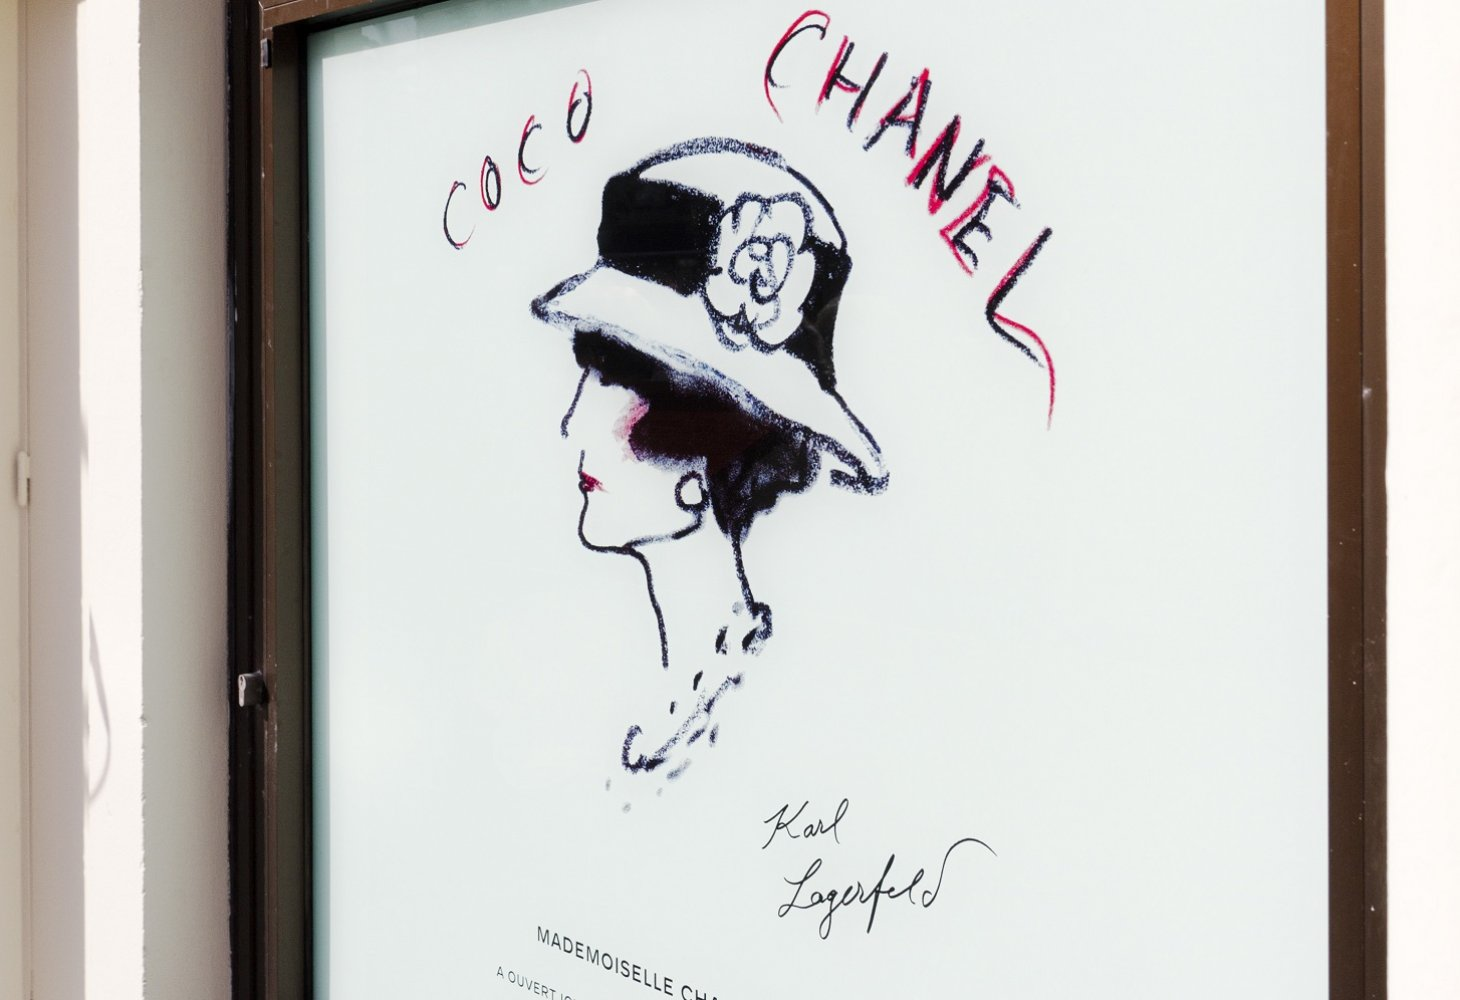 Plaque Chanel